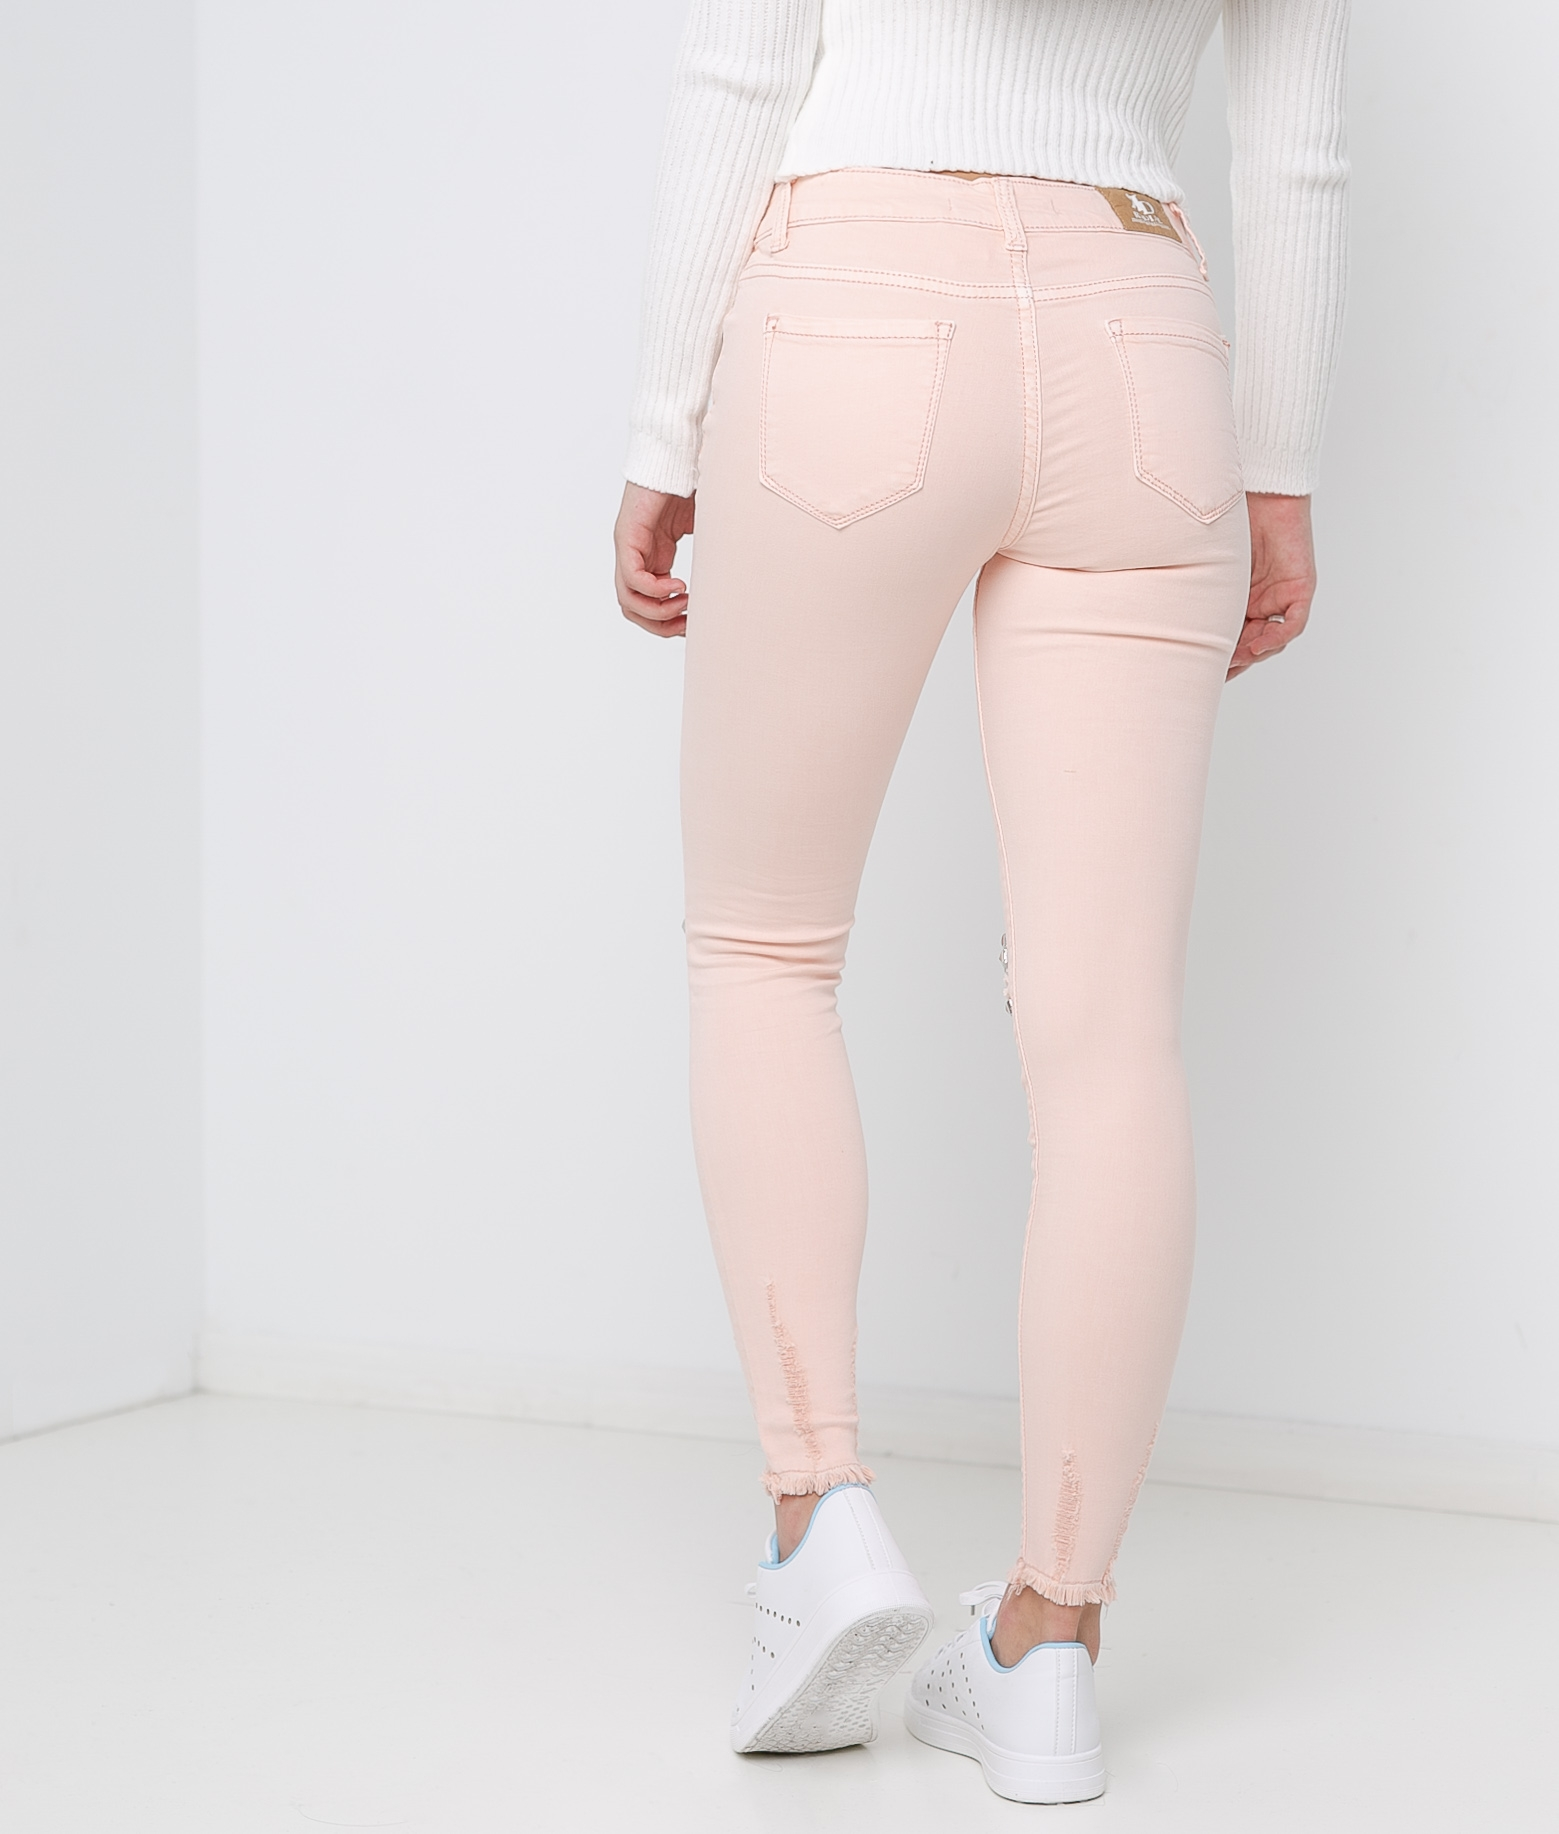 PANTALON ZACUM - ROSE